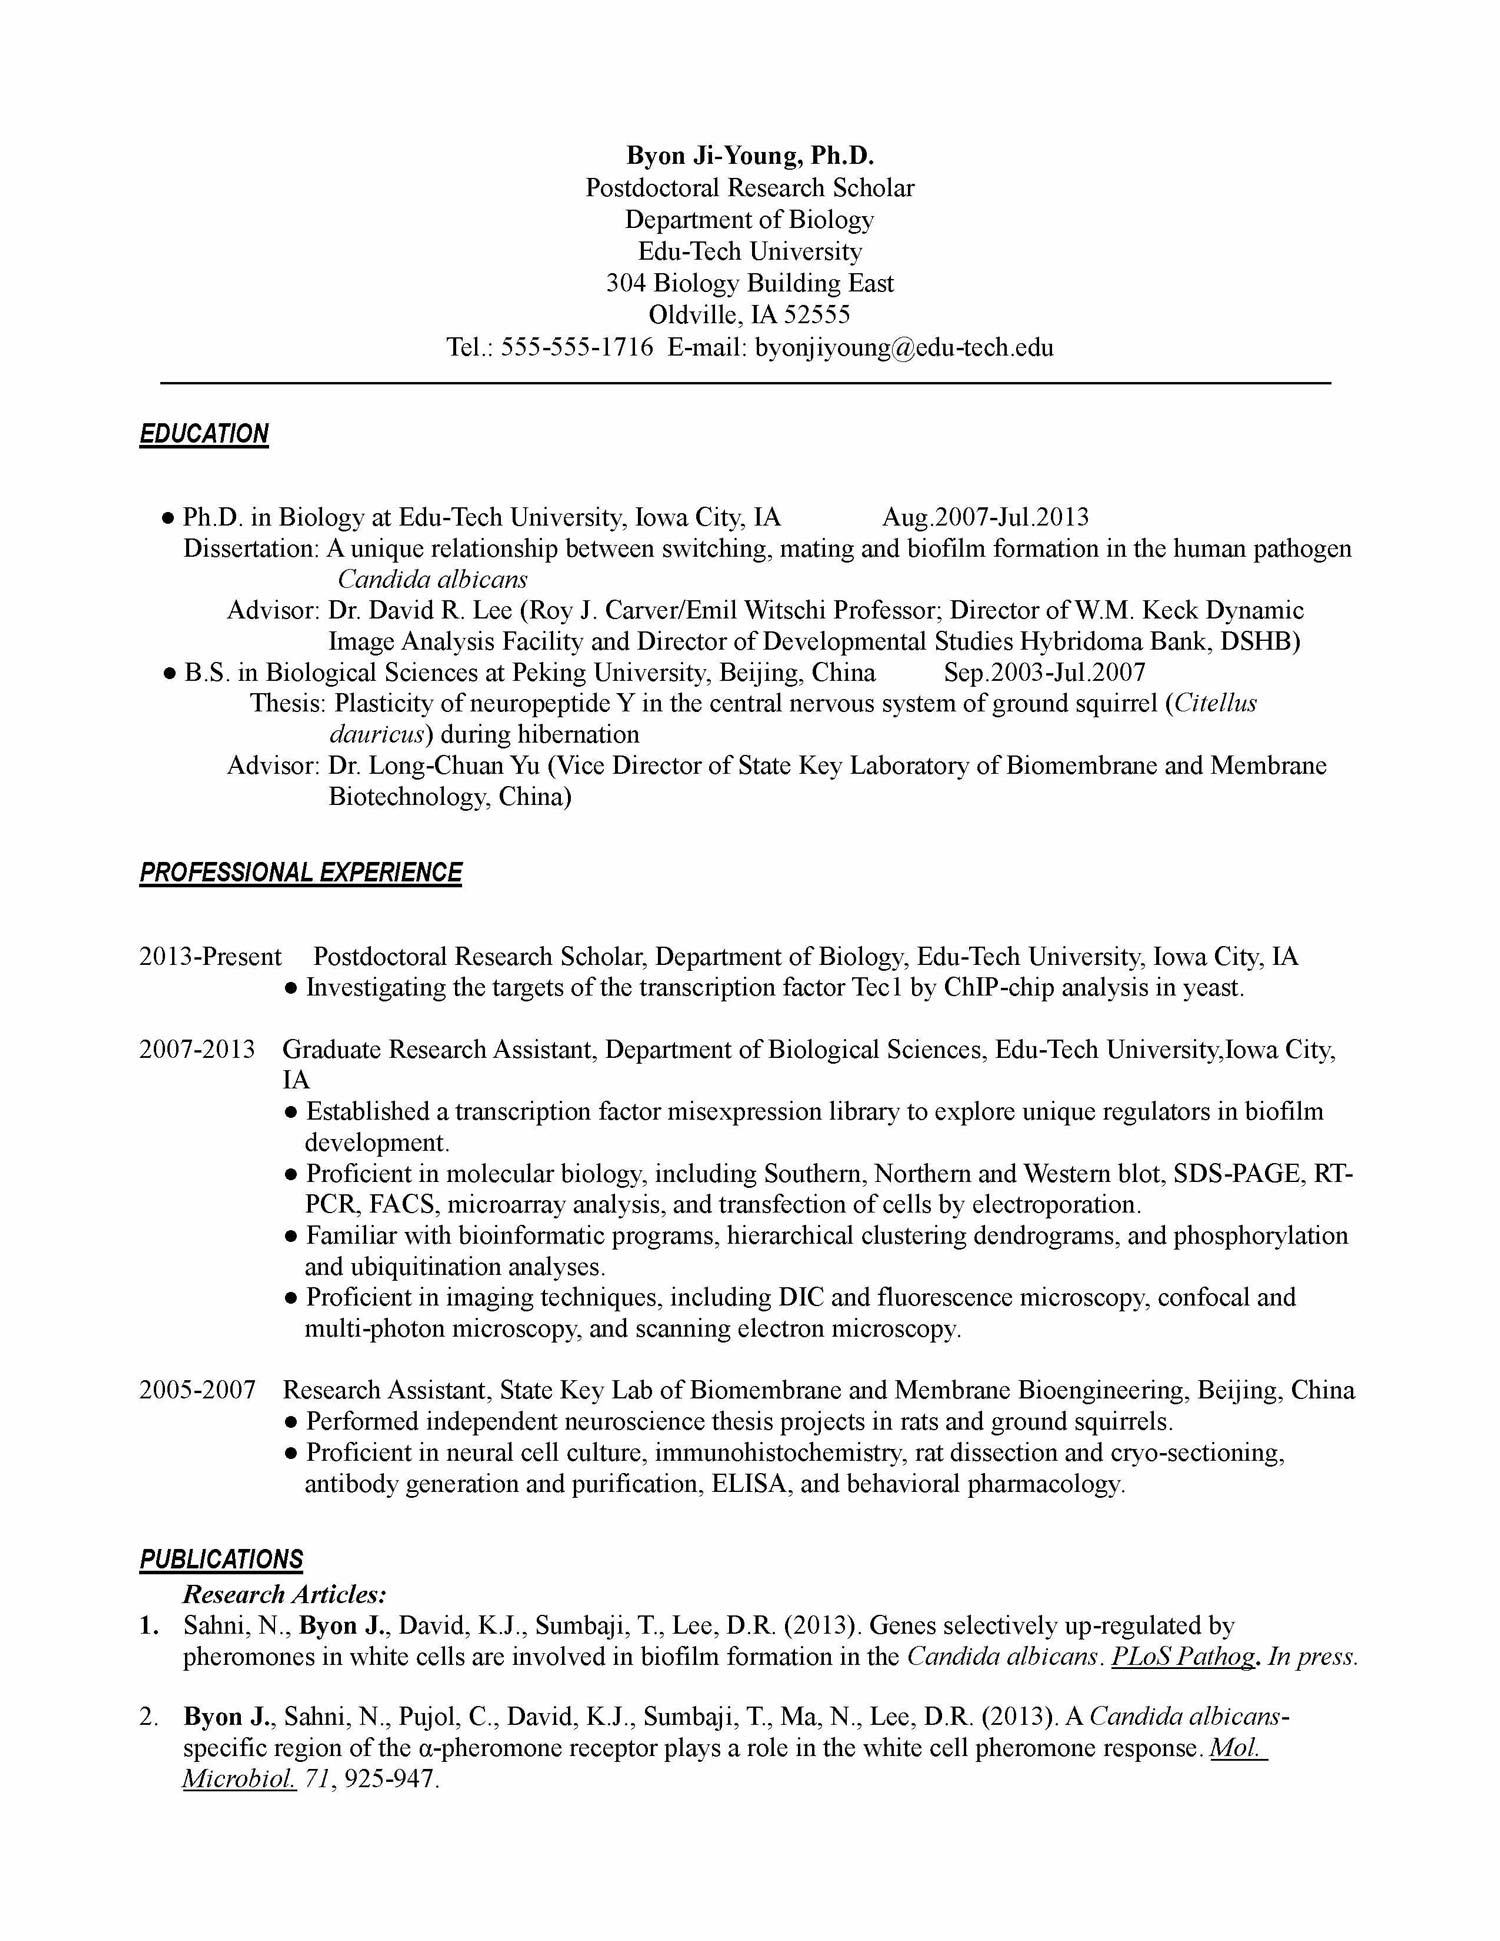 Cv Template Biology - Resume Examples